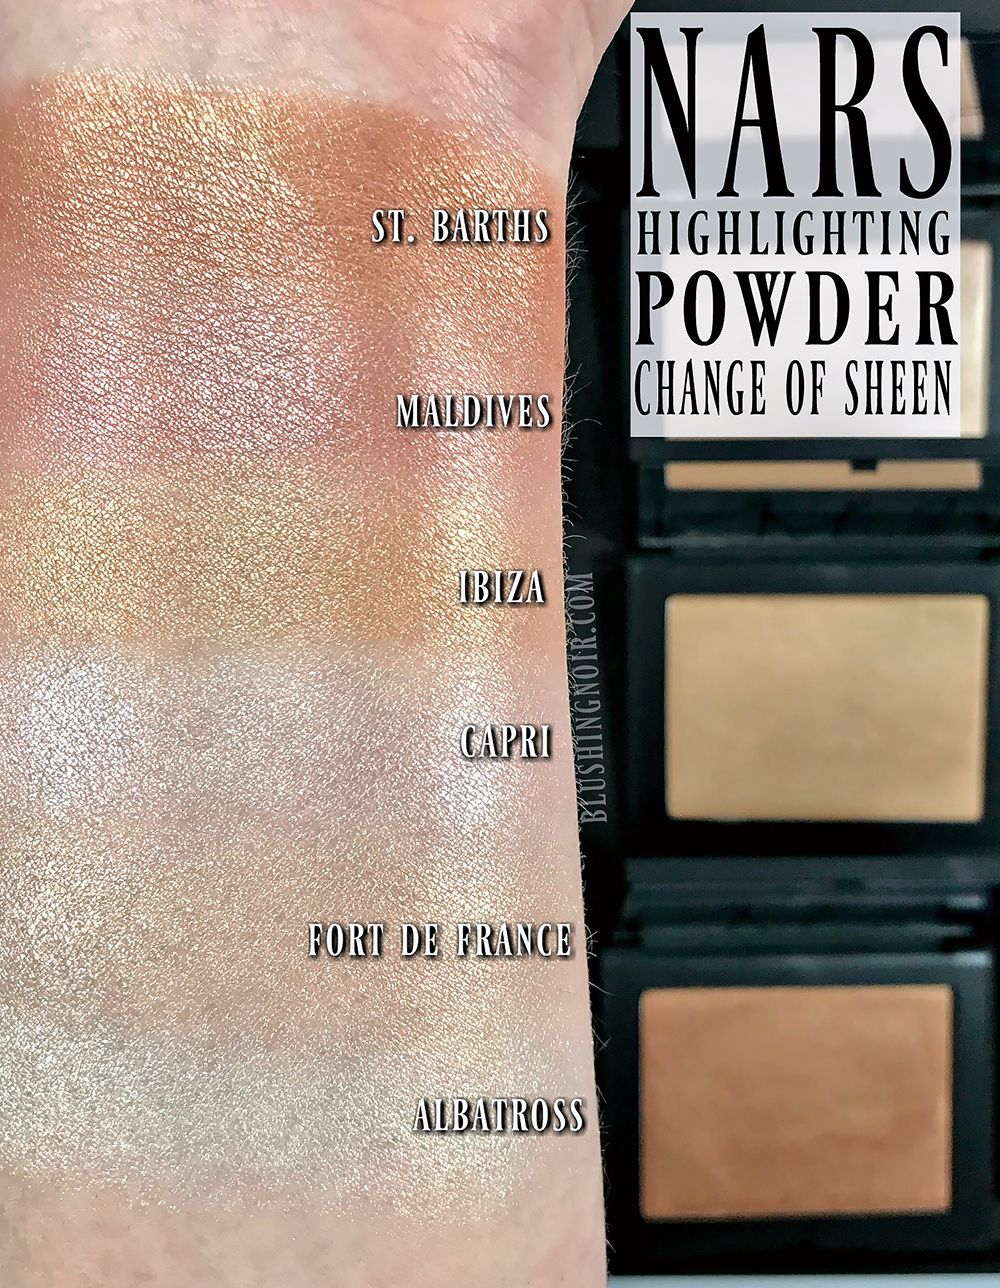 NARS Highlighting Powders Swatches + Review | MAKEUP - We ...